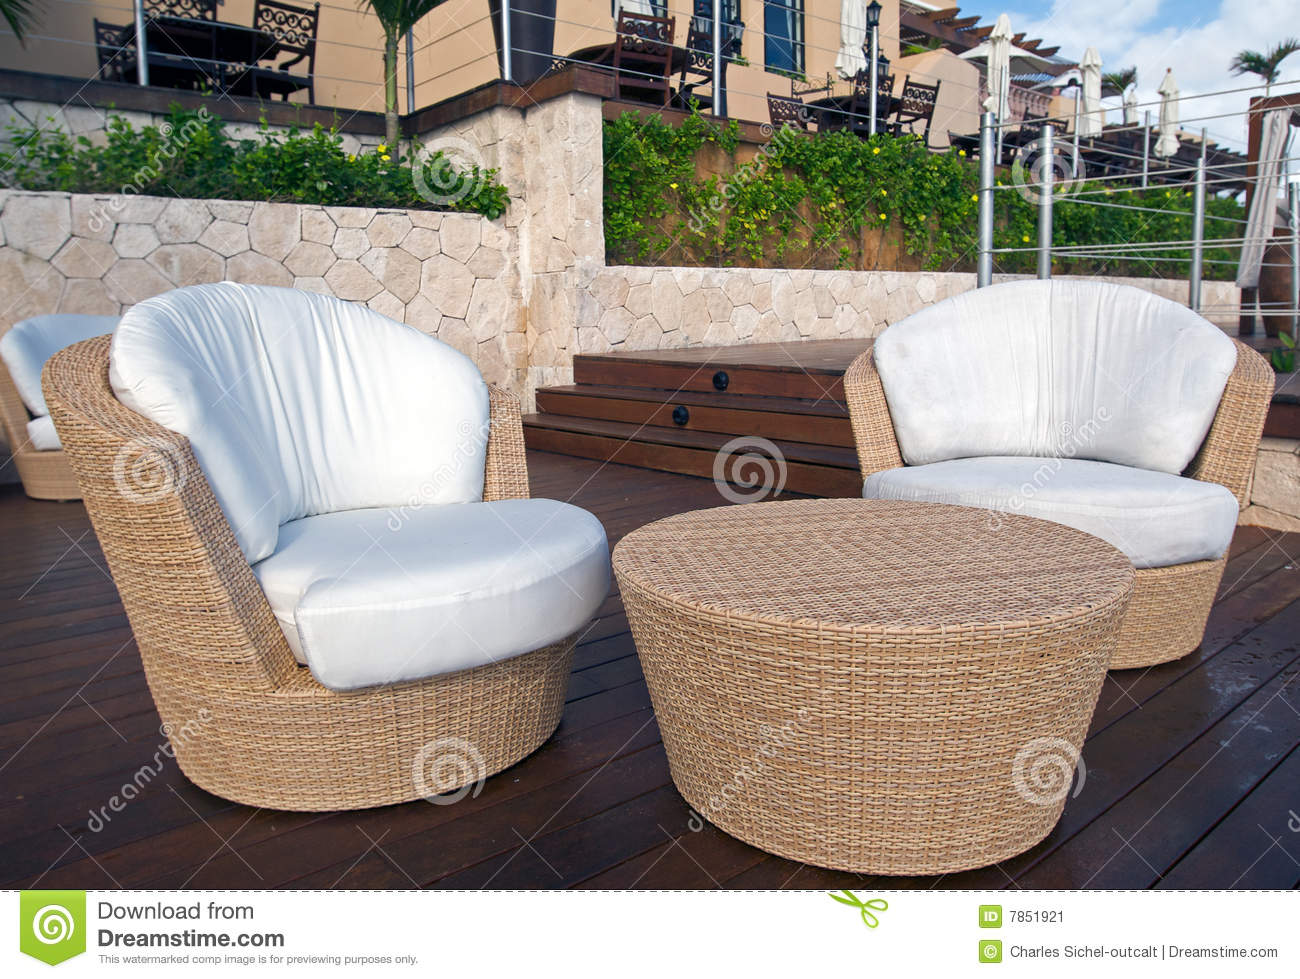 Wicker furniture at luxury resort stock image image of - Muebles de rattan ...